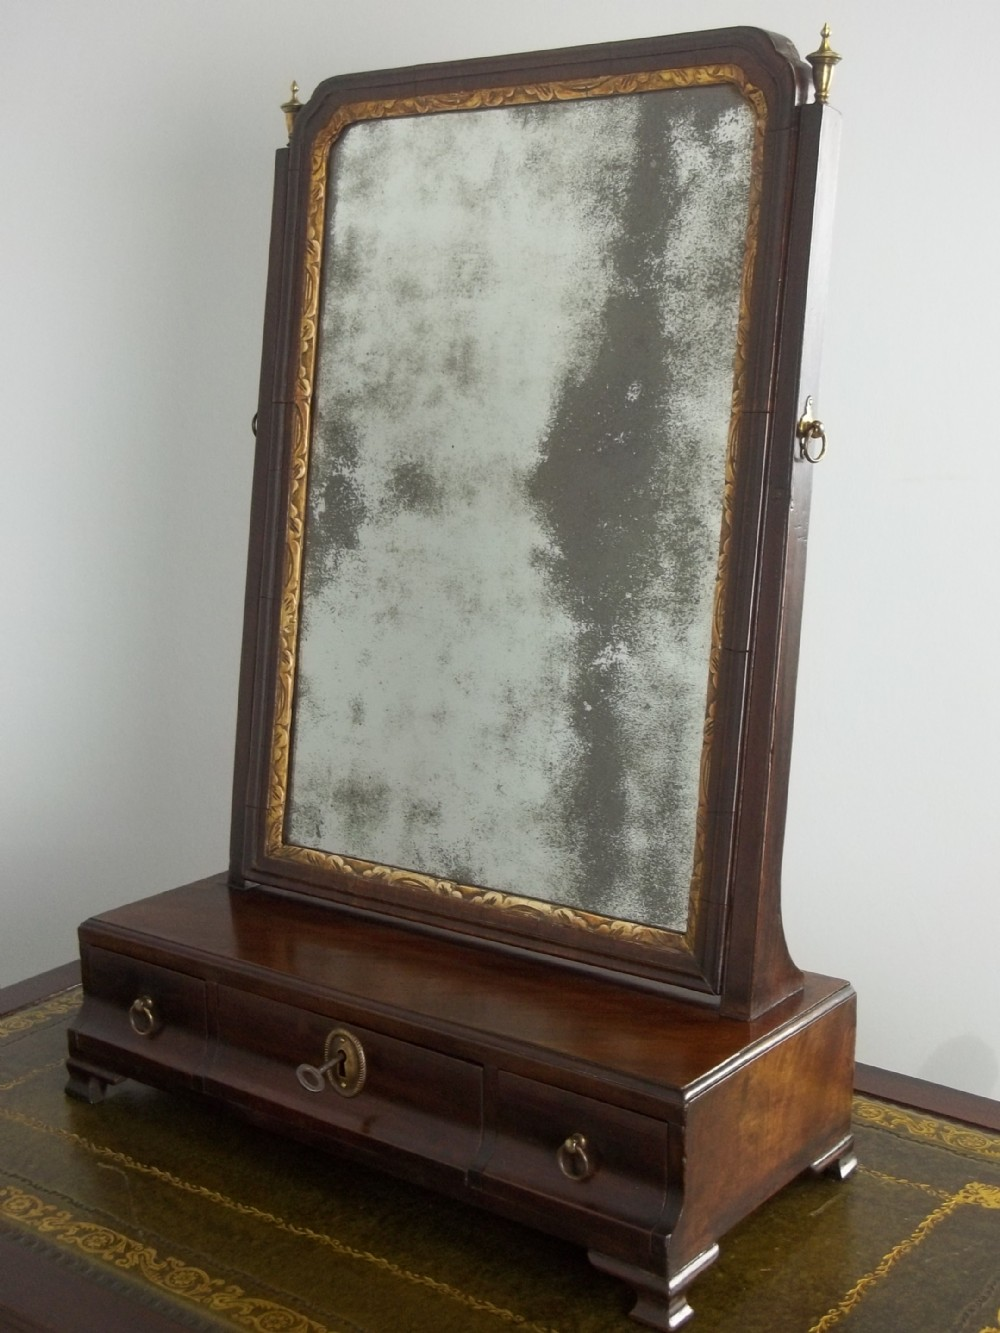 a george ii walnut 18th century georgian red walnut or mahogany dressing table toilet mirror c1750